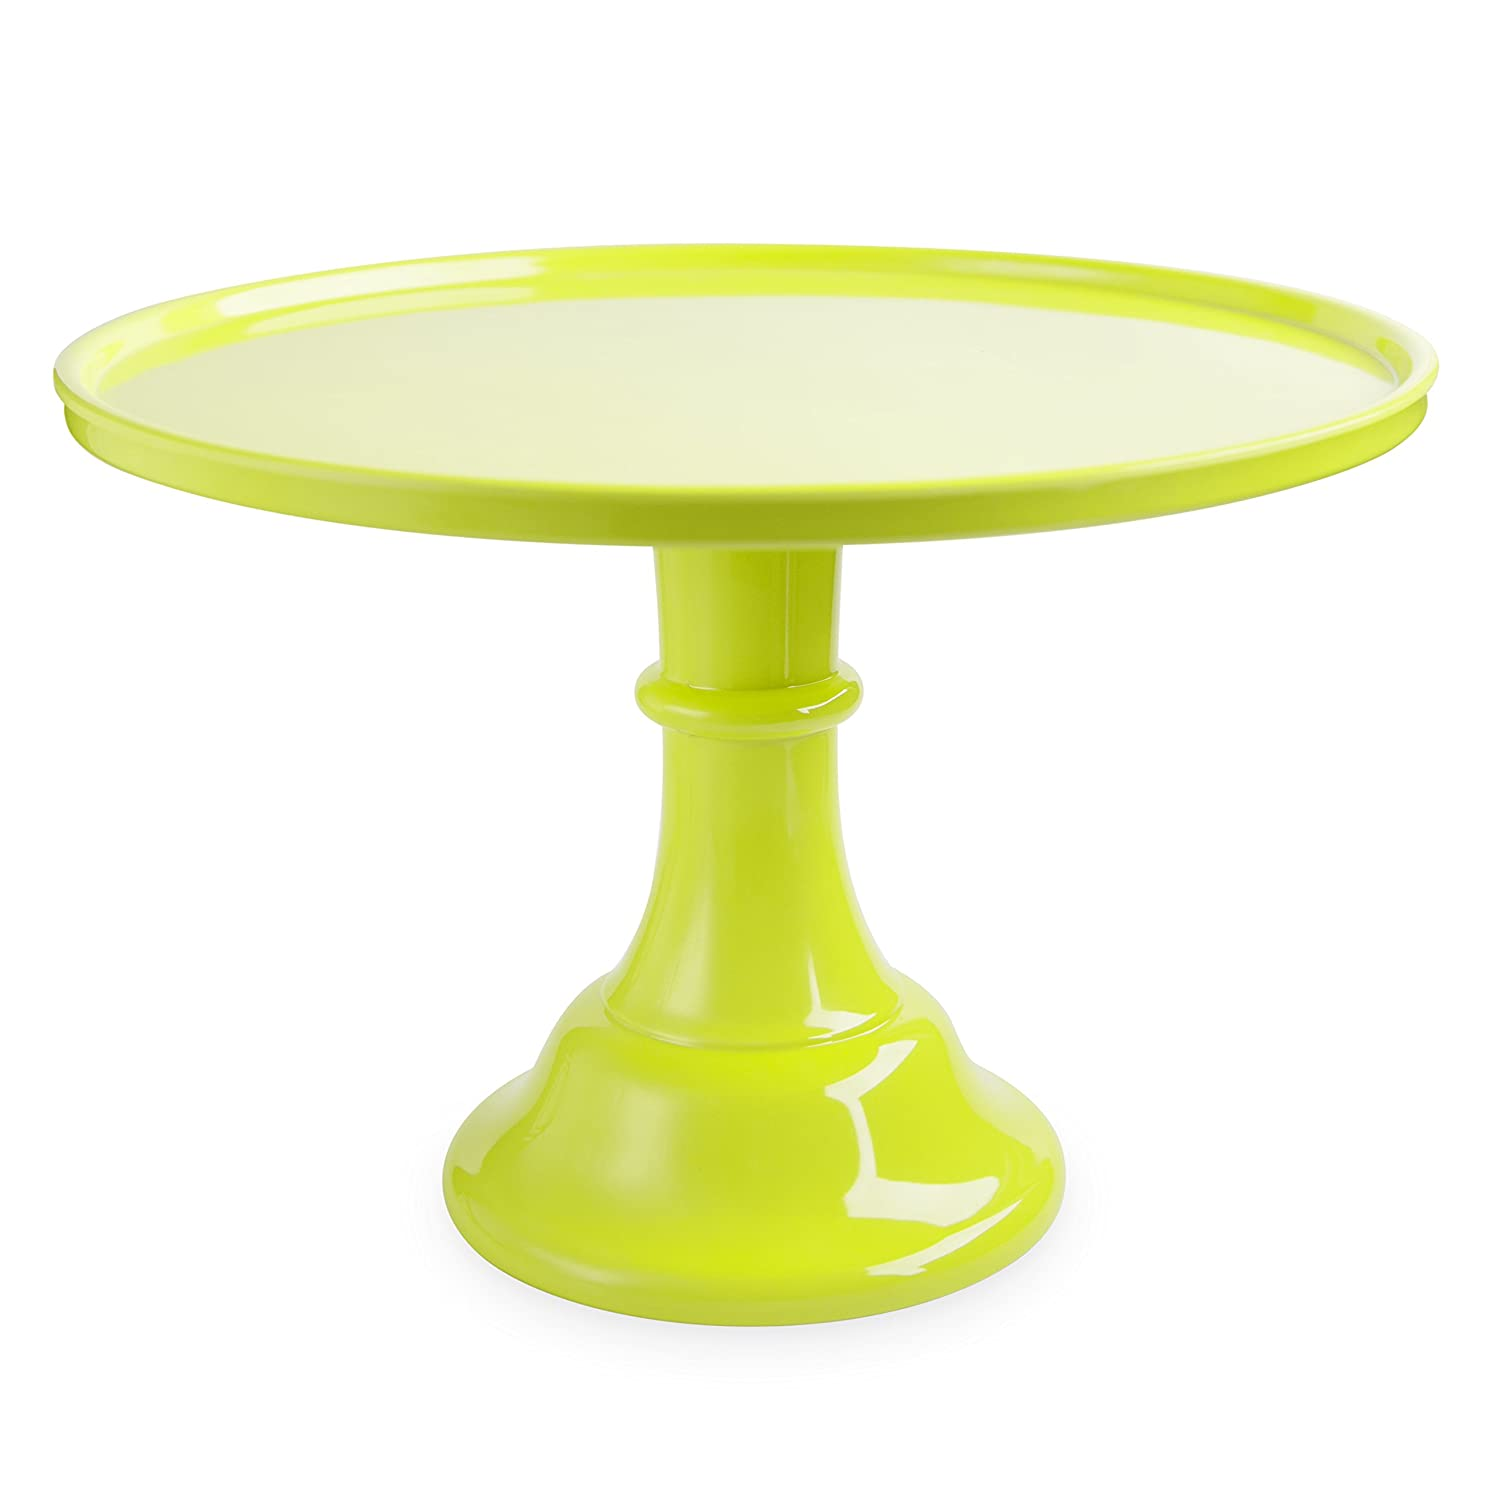 Cakewalk 6849 Green Melamine Cake Stands, One Size